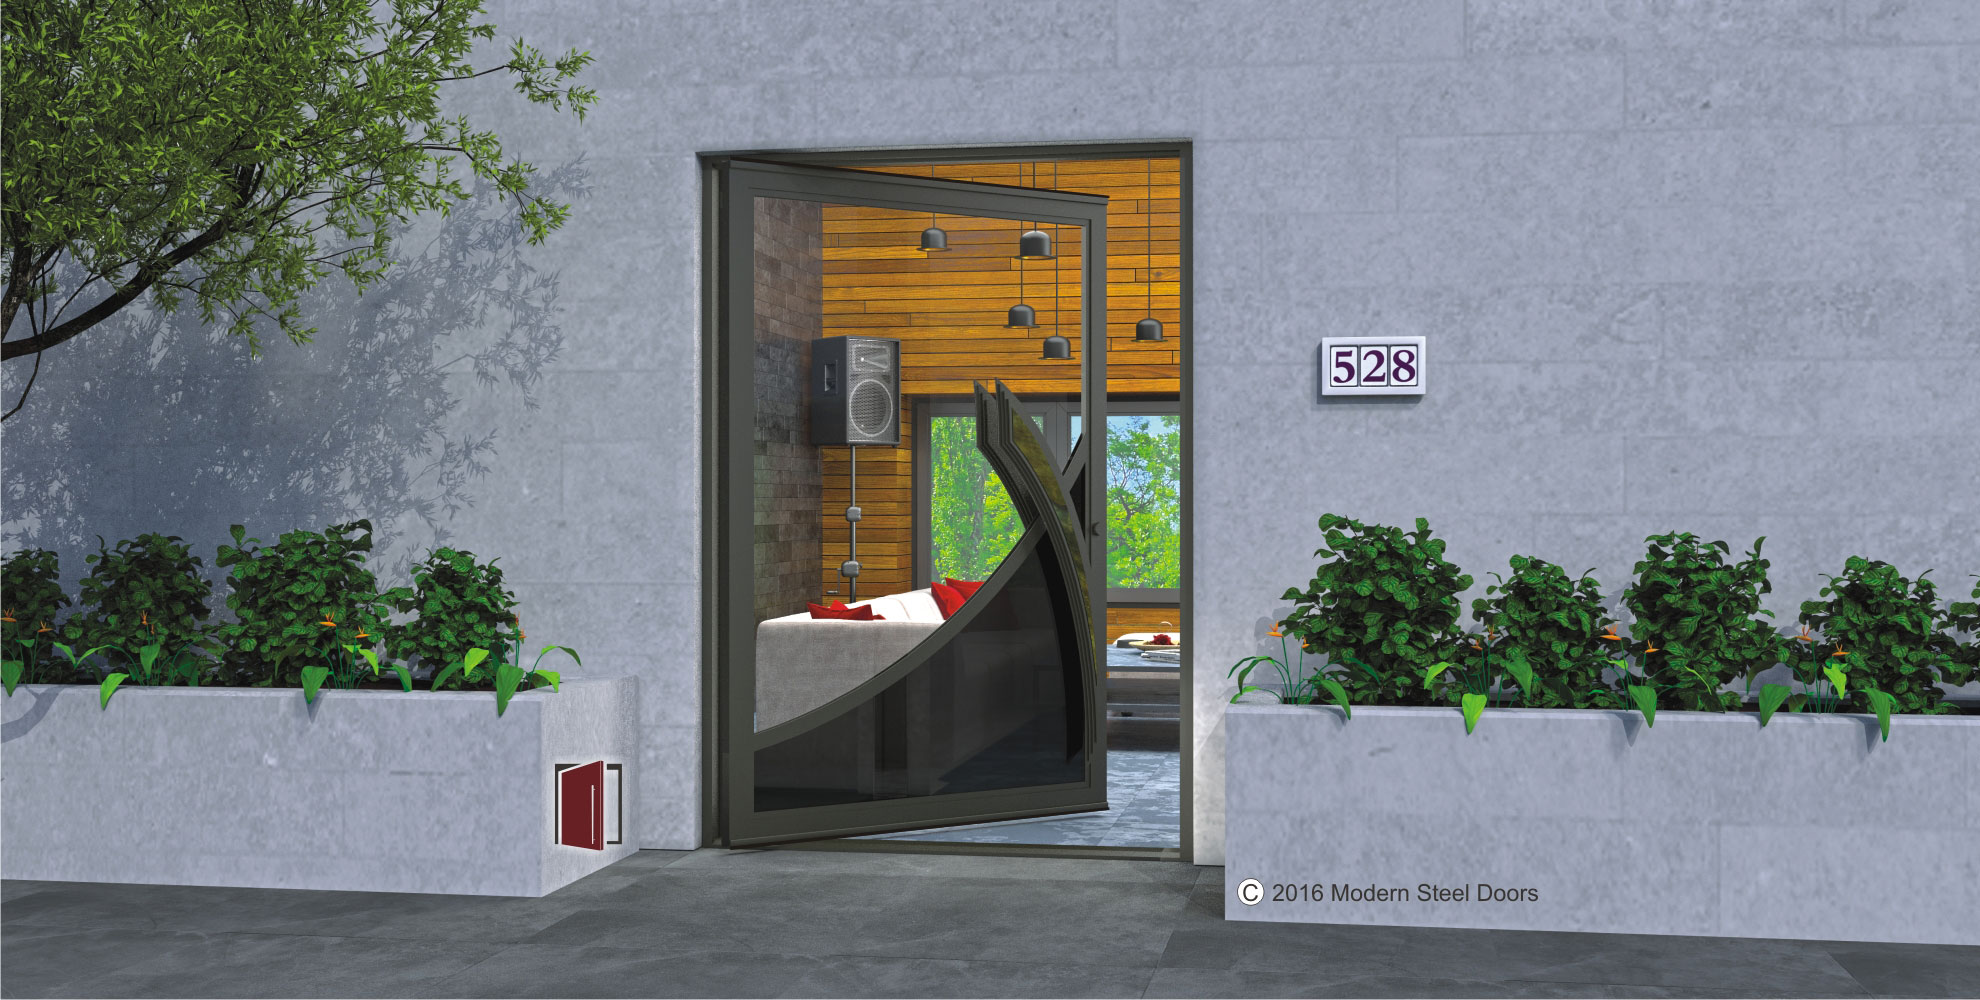 pivot front door custom design made of clear and tinted glass with accent rainbow bronze curved door hardware